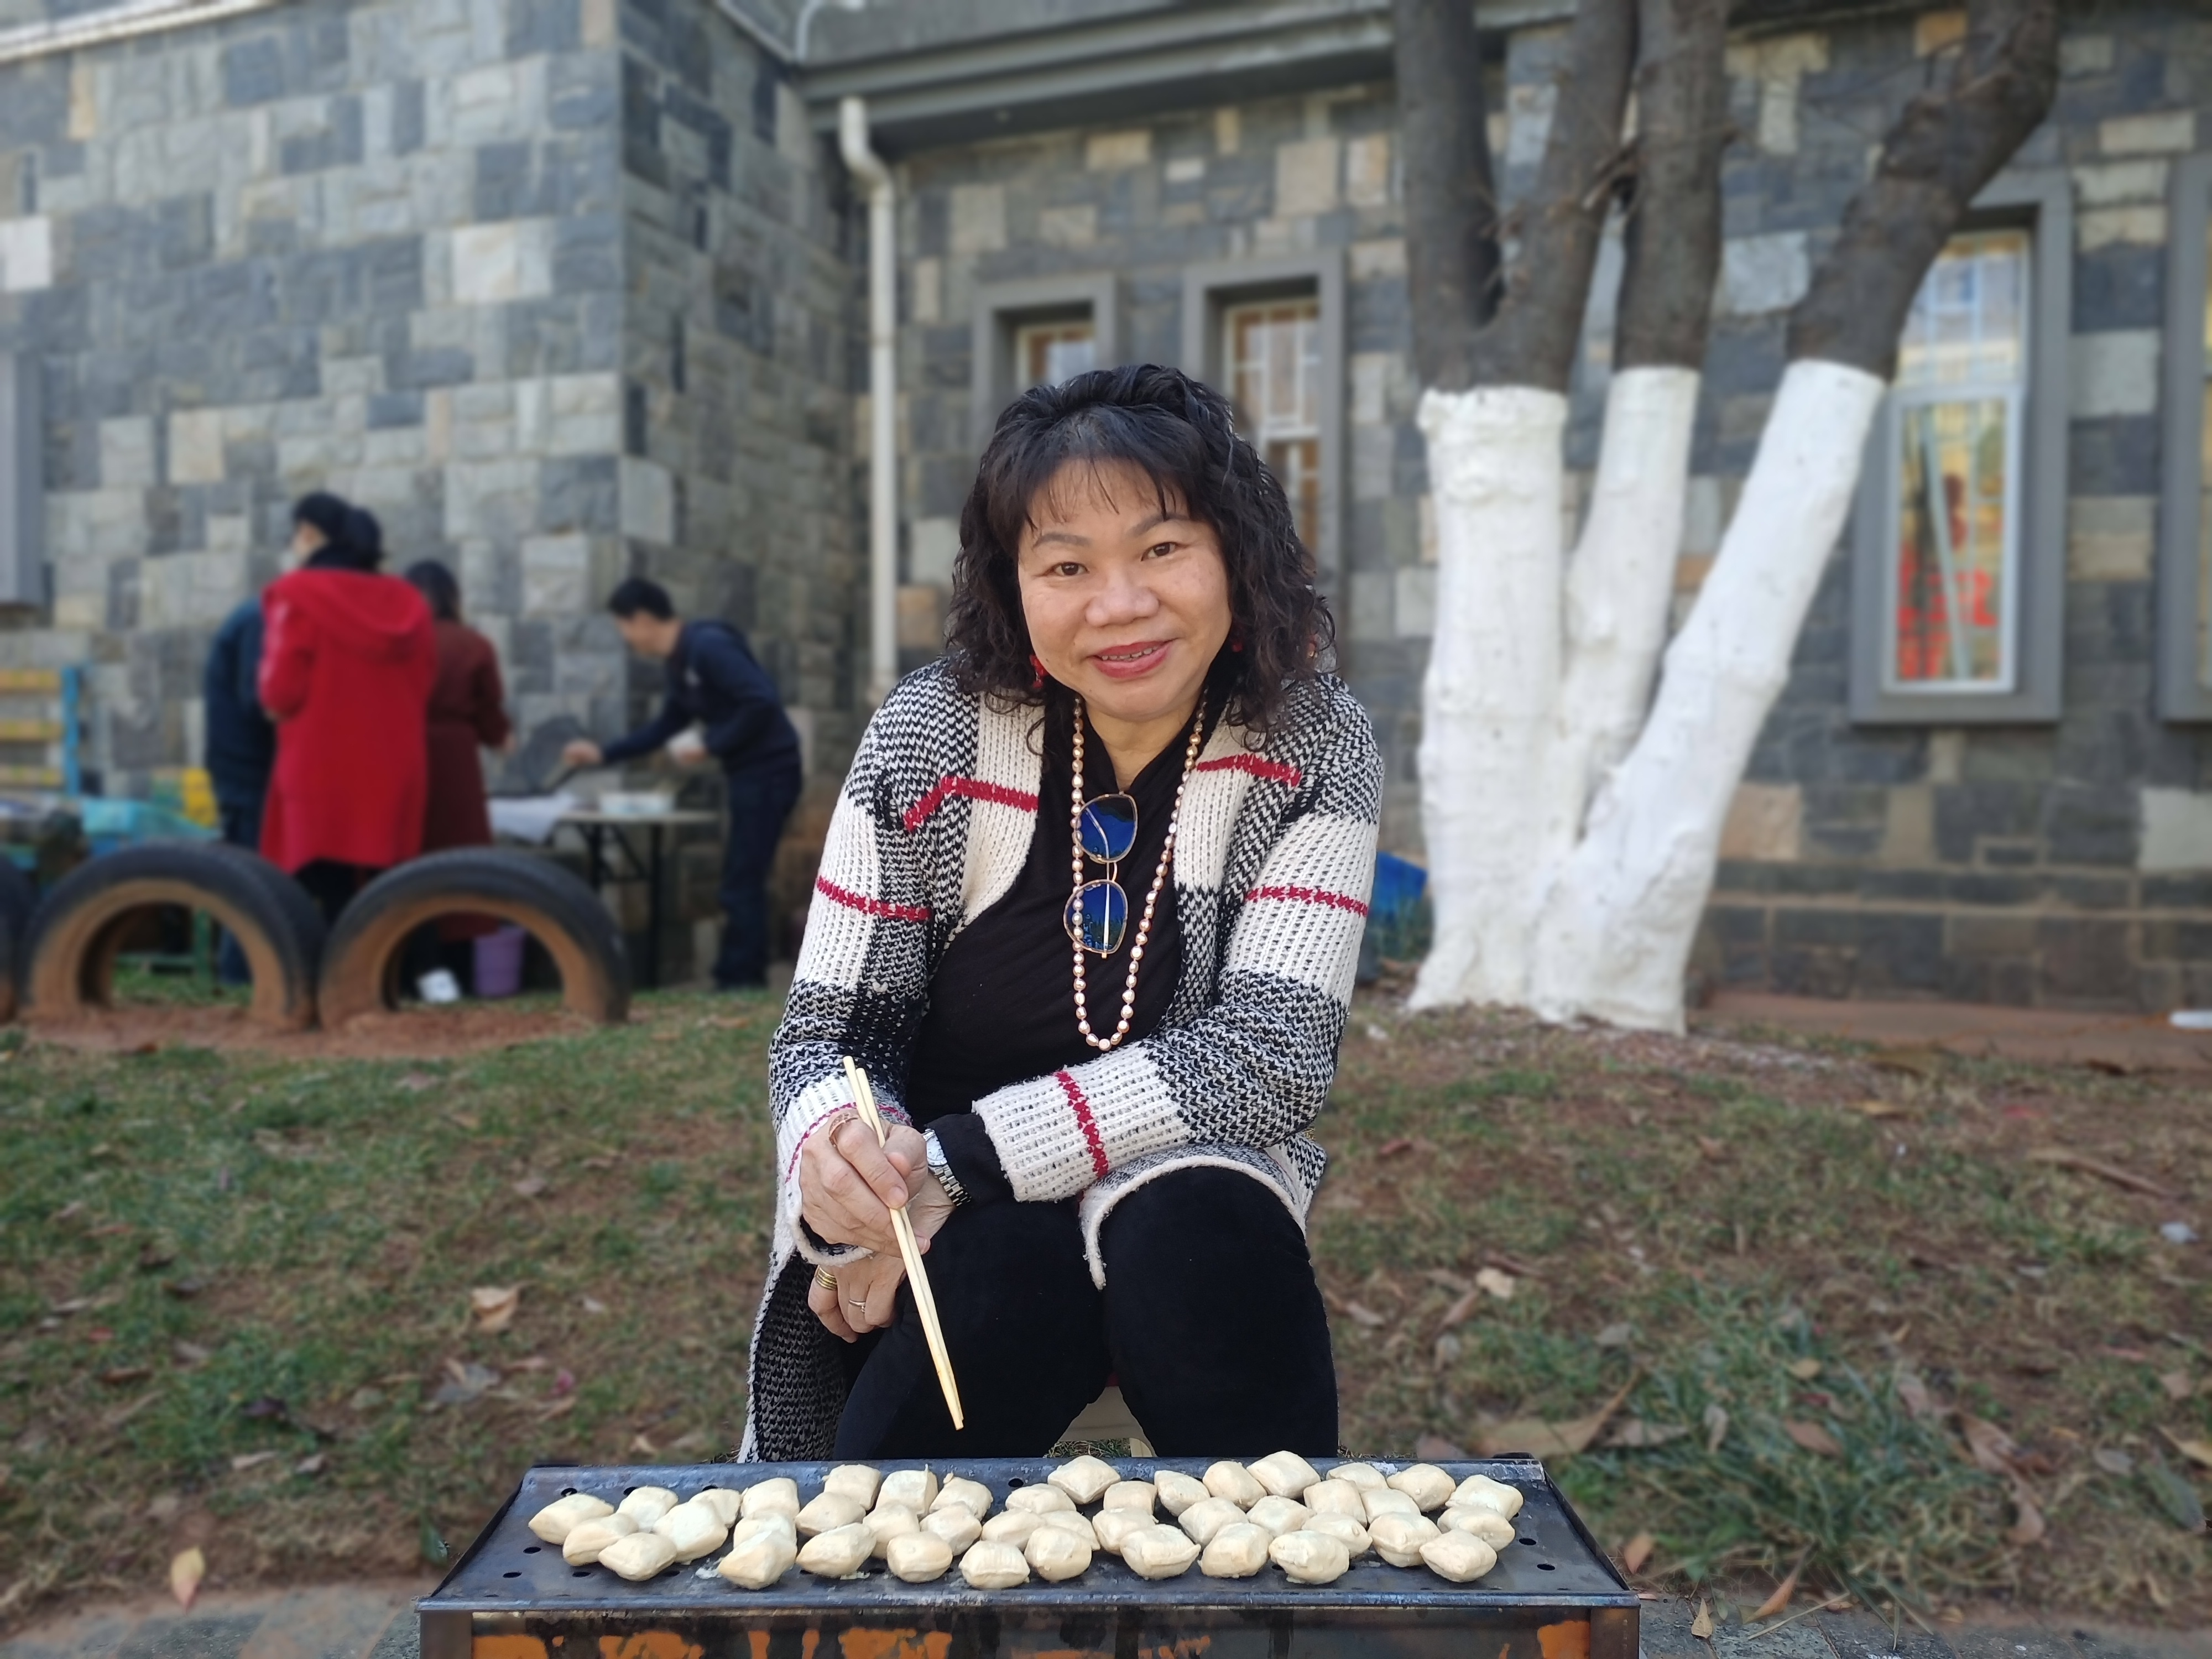 Meet Mui Wan, The Singaporean Who Uprooted Her Family To Open Kindergartens In China